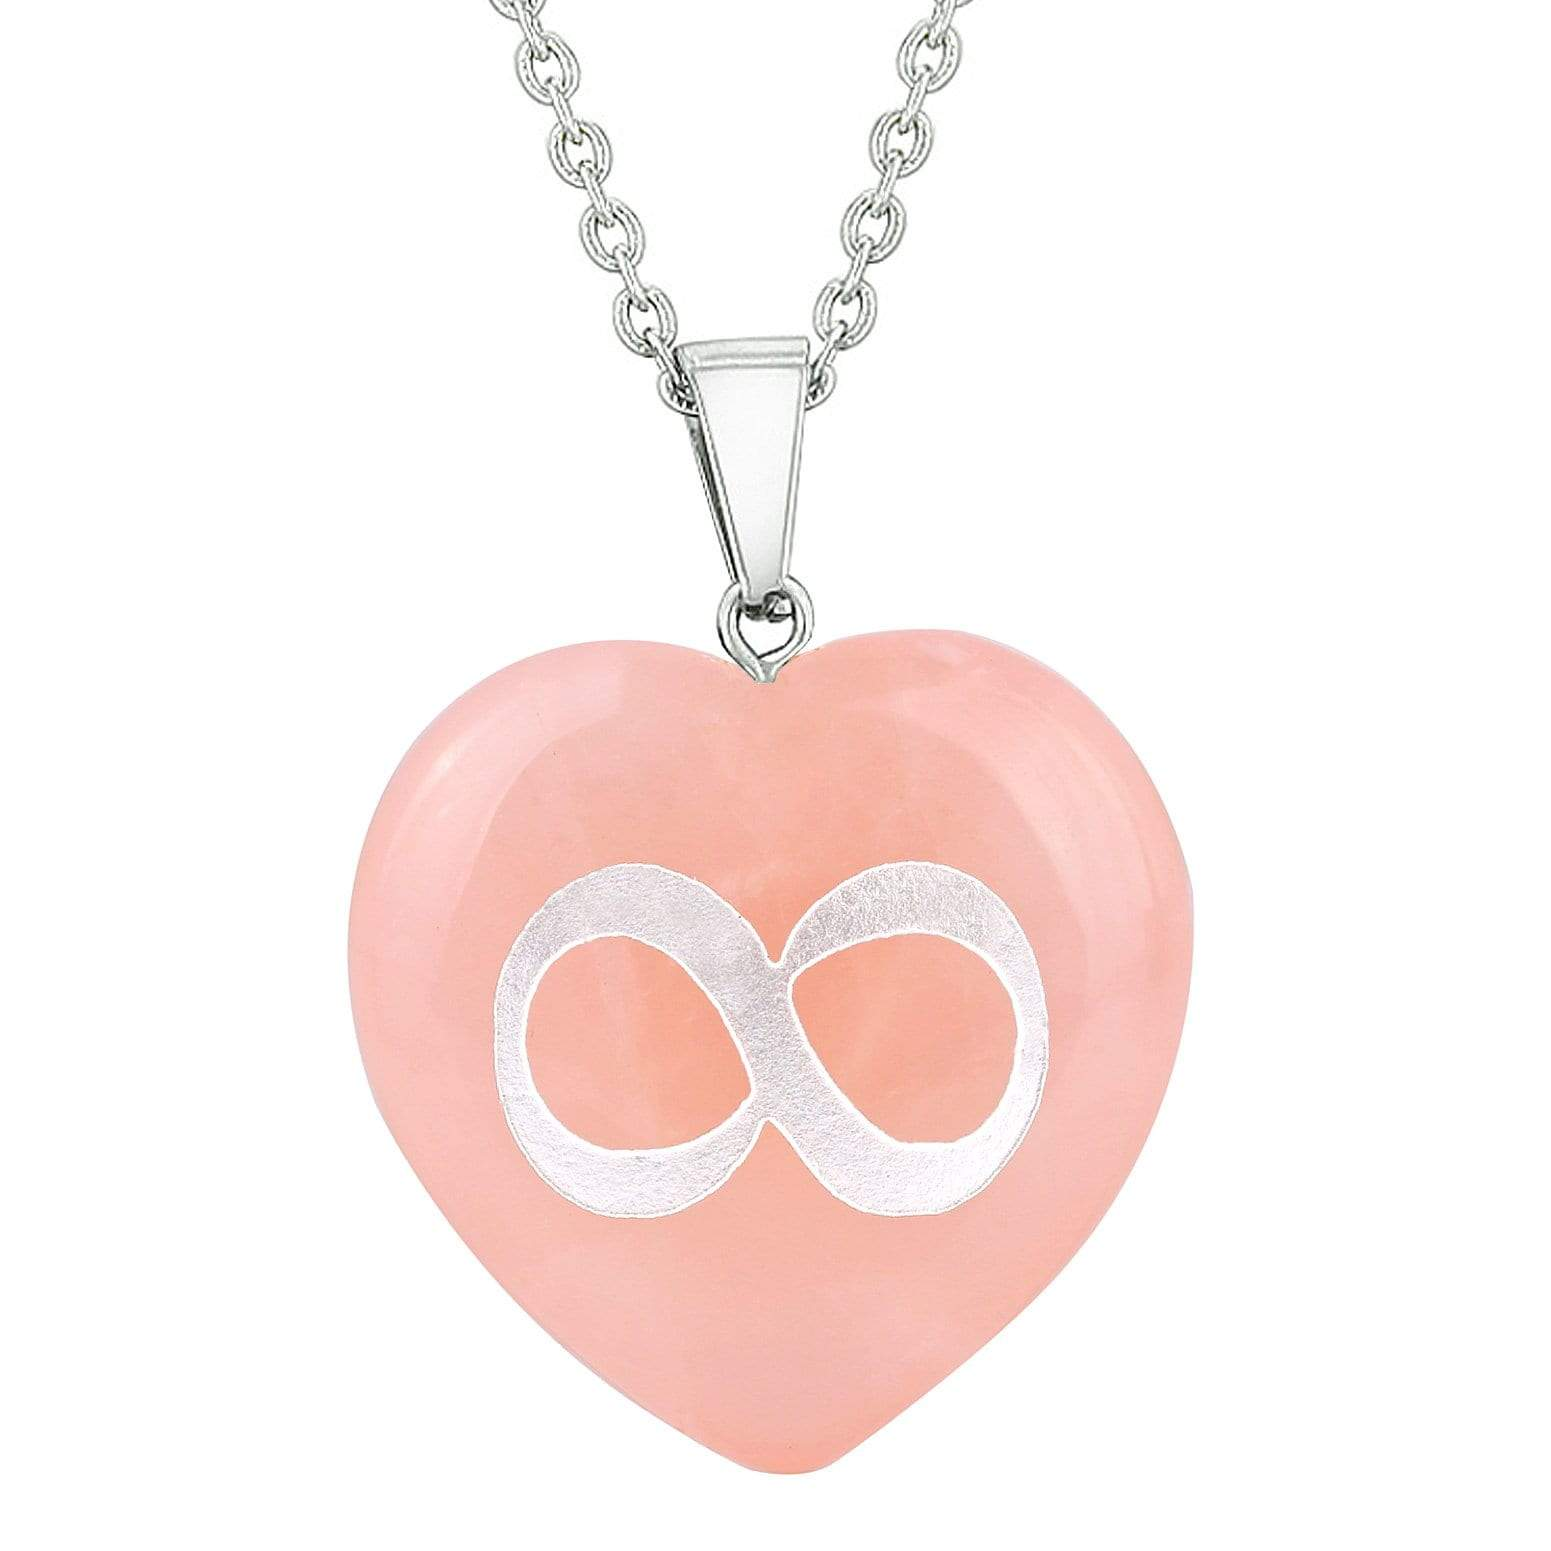 Amulet Infinity Magical Unity Powers Protection Energy Rose Quartz Puffy Heart Pendant Necklace